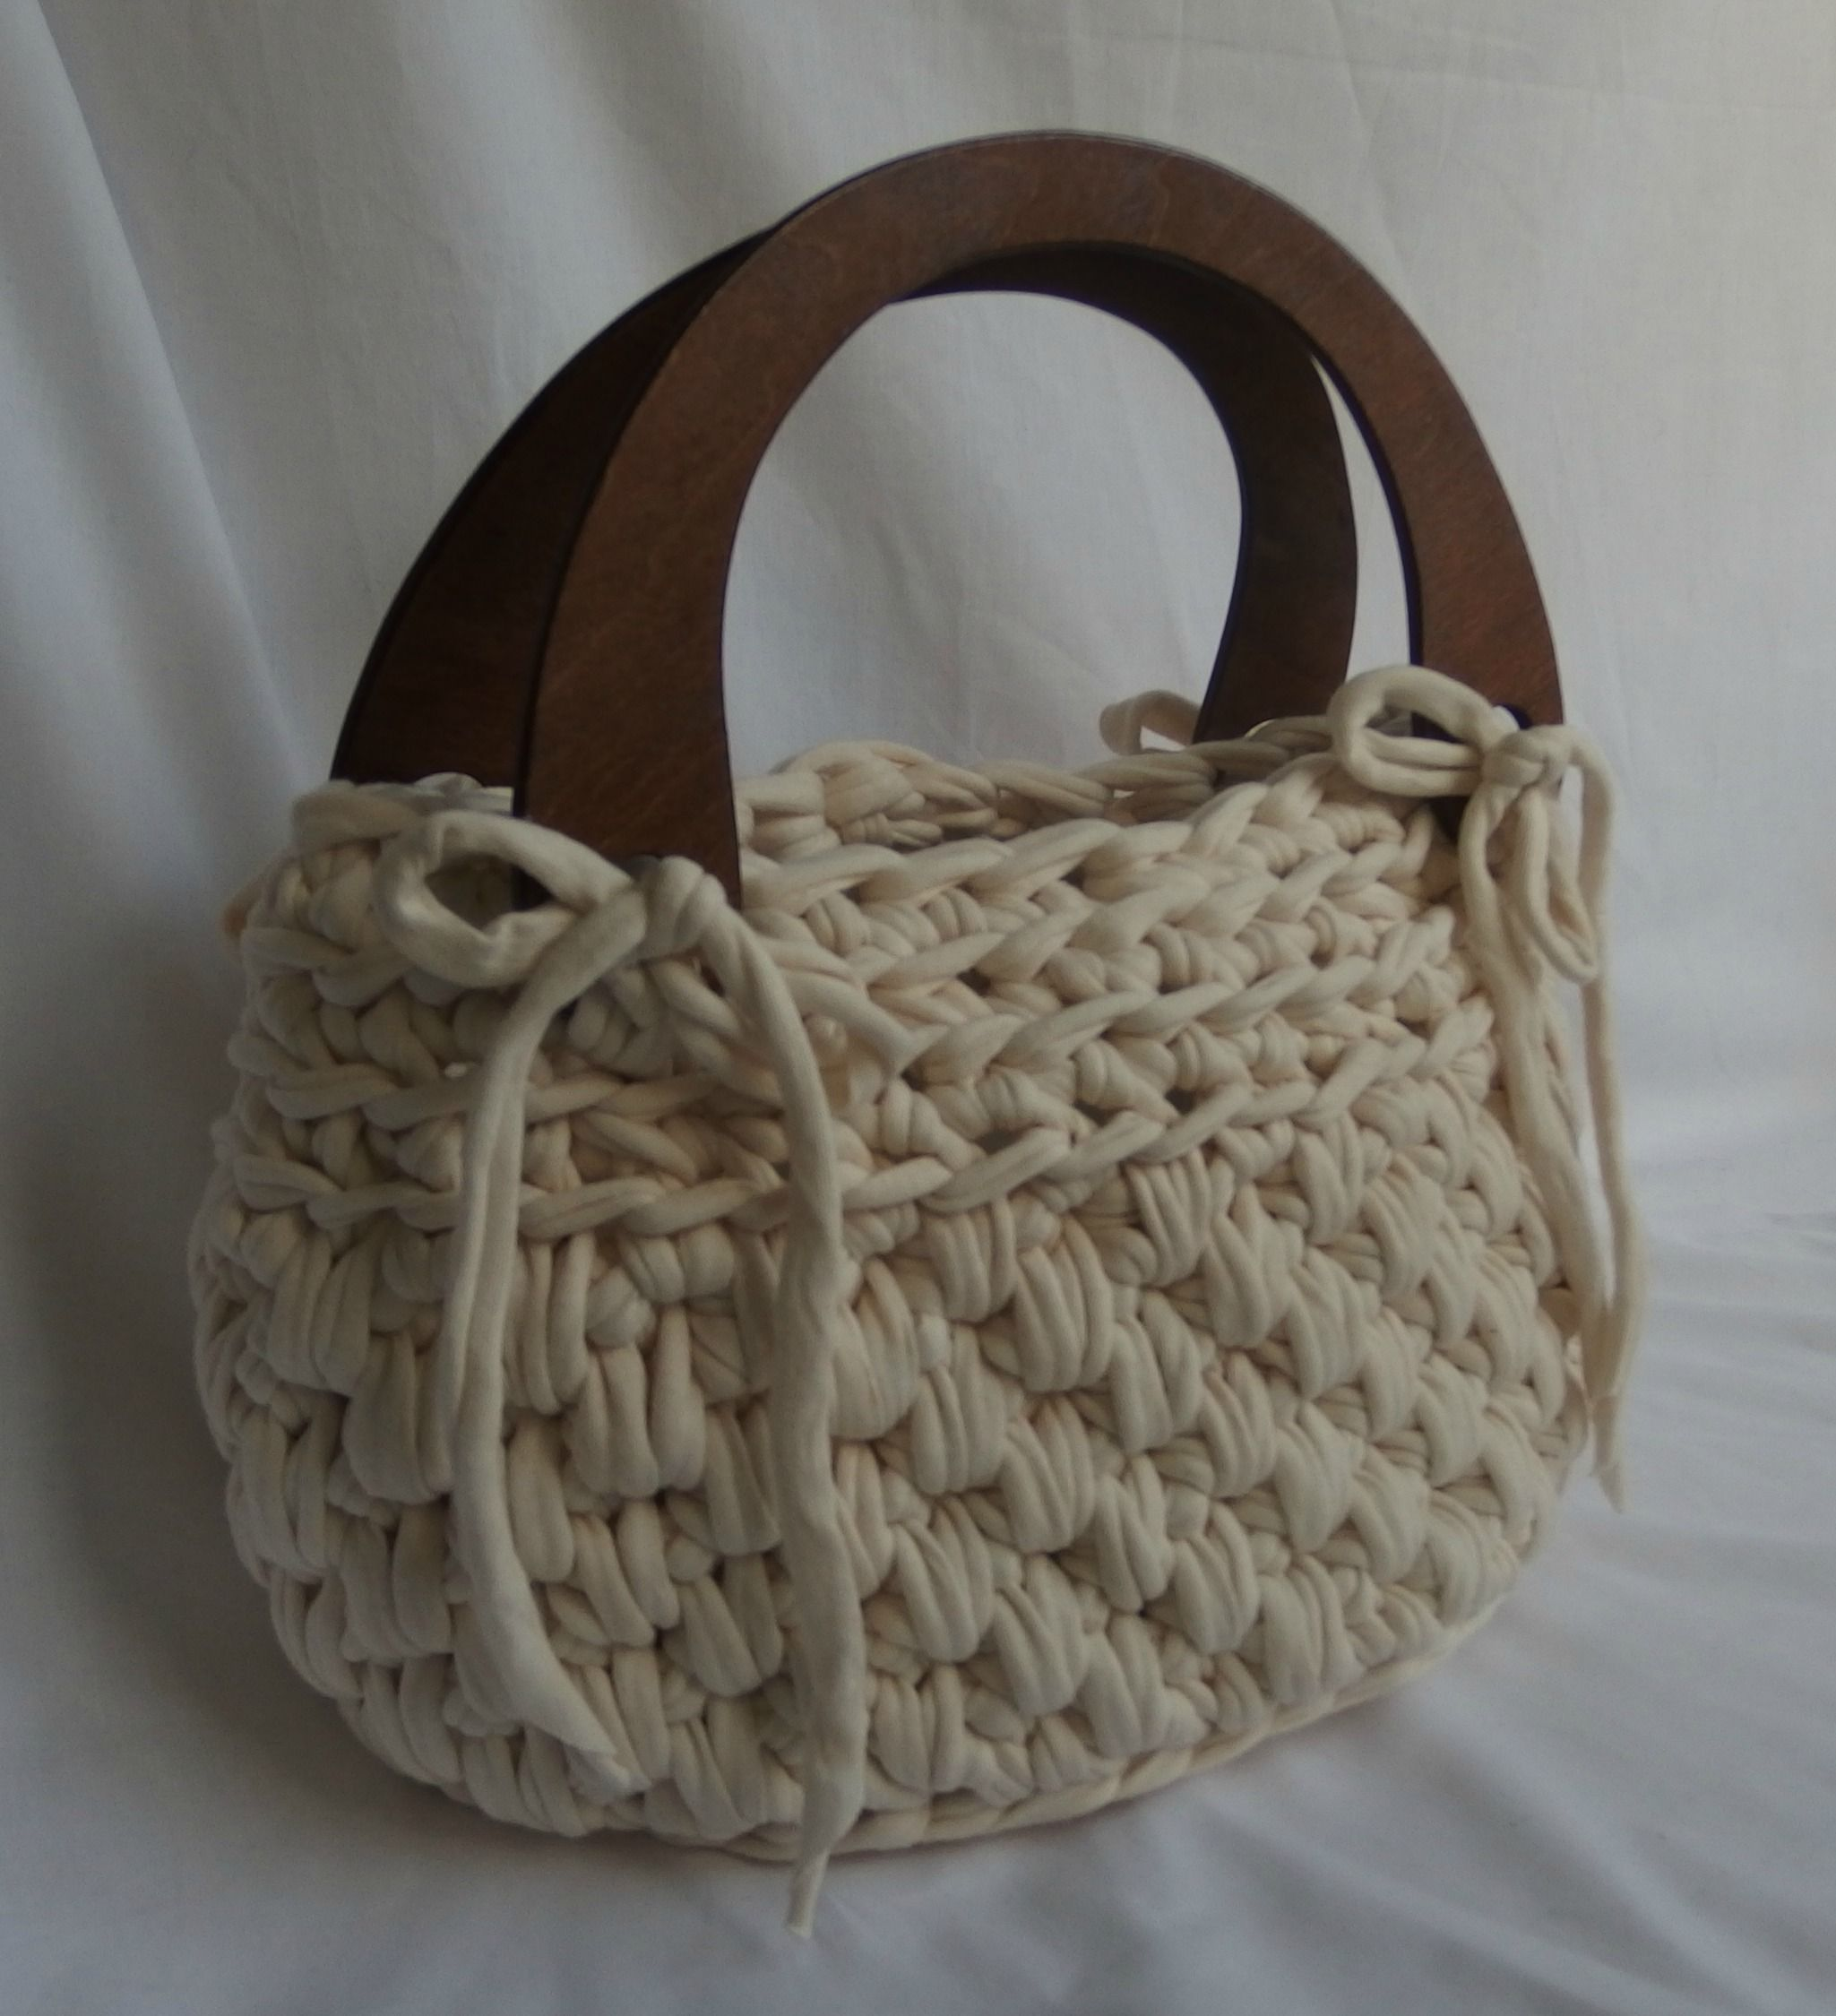 Crochet Handbag With Wooden Handles Bags Crochet And Knit